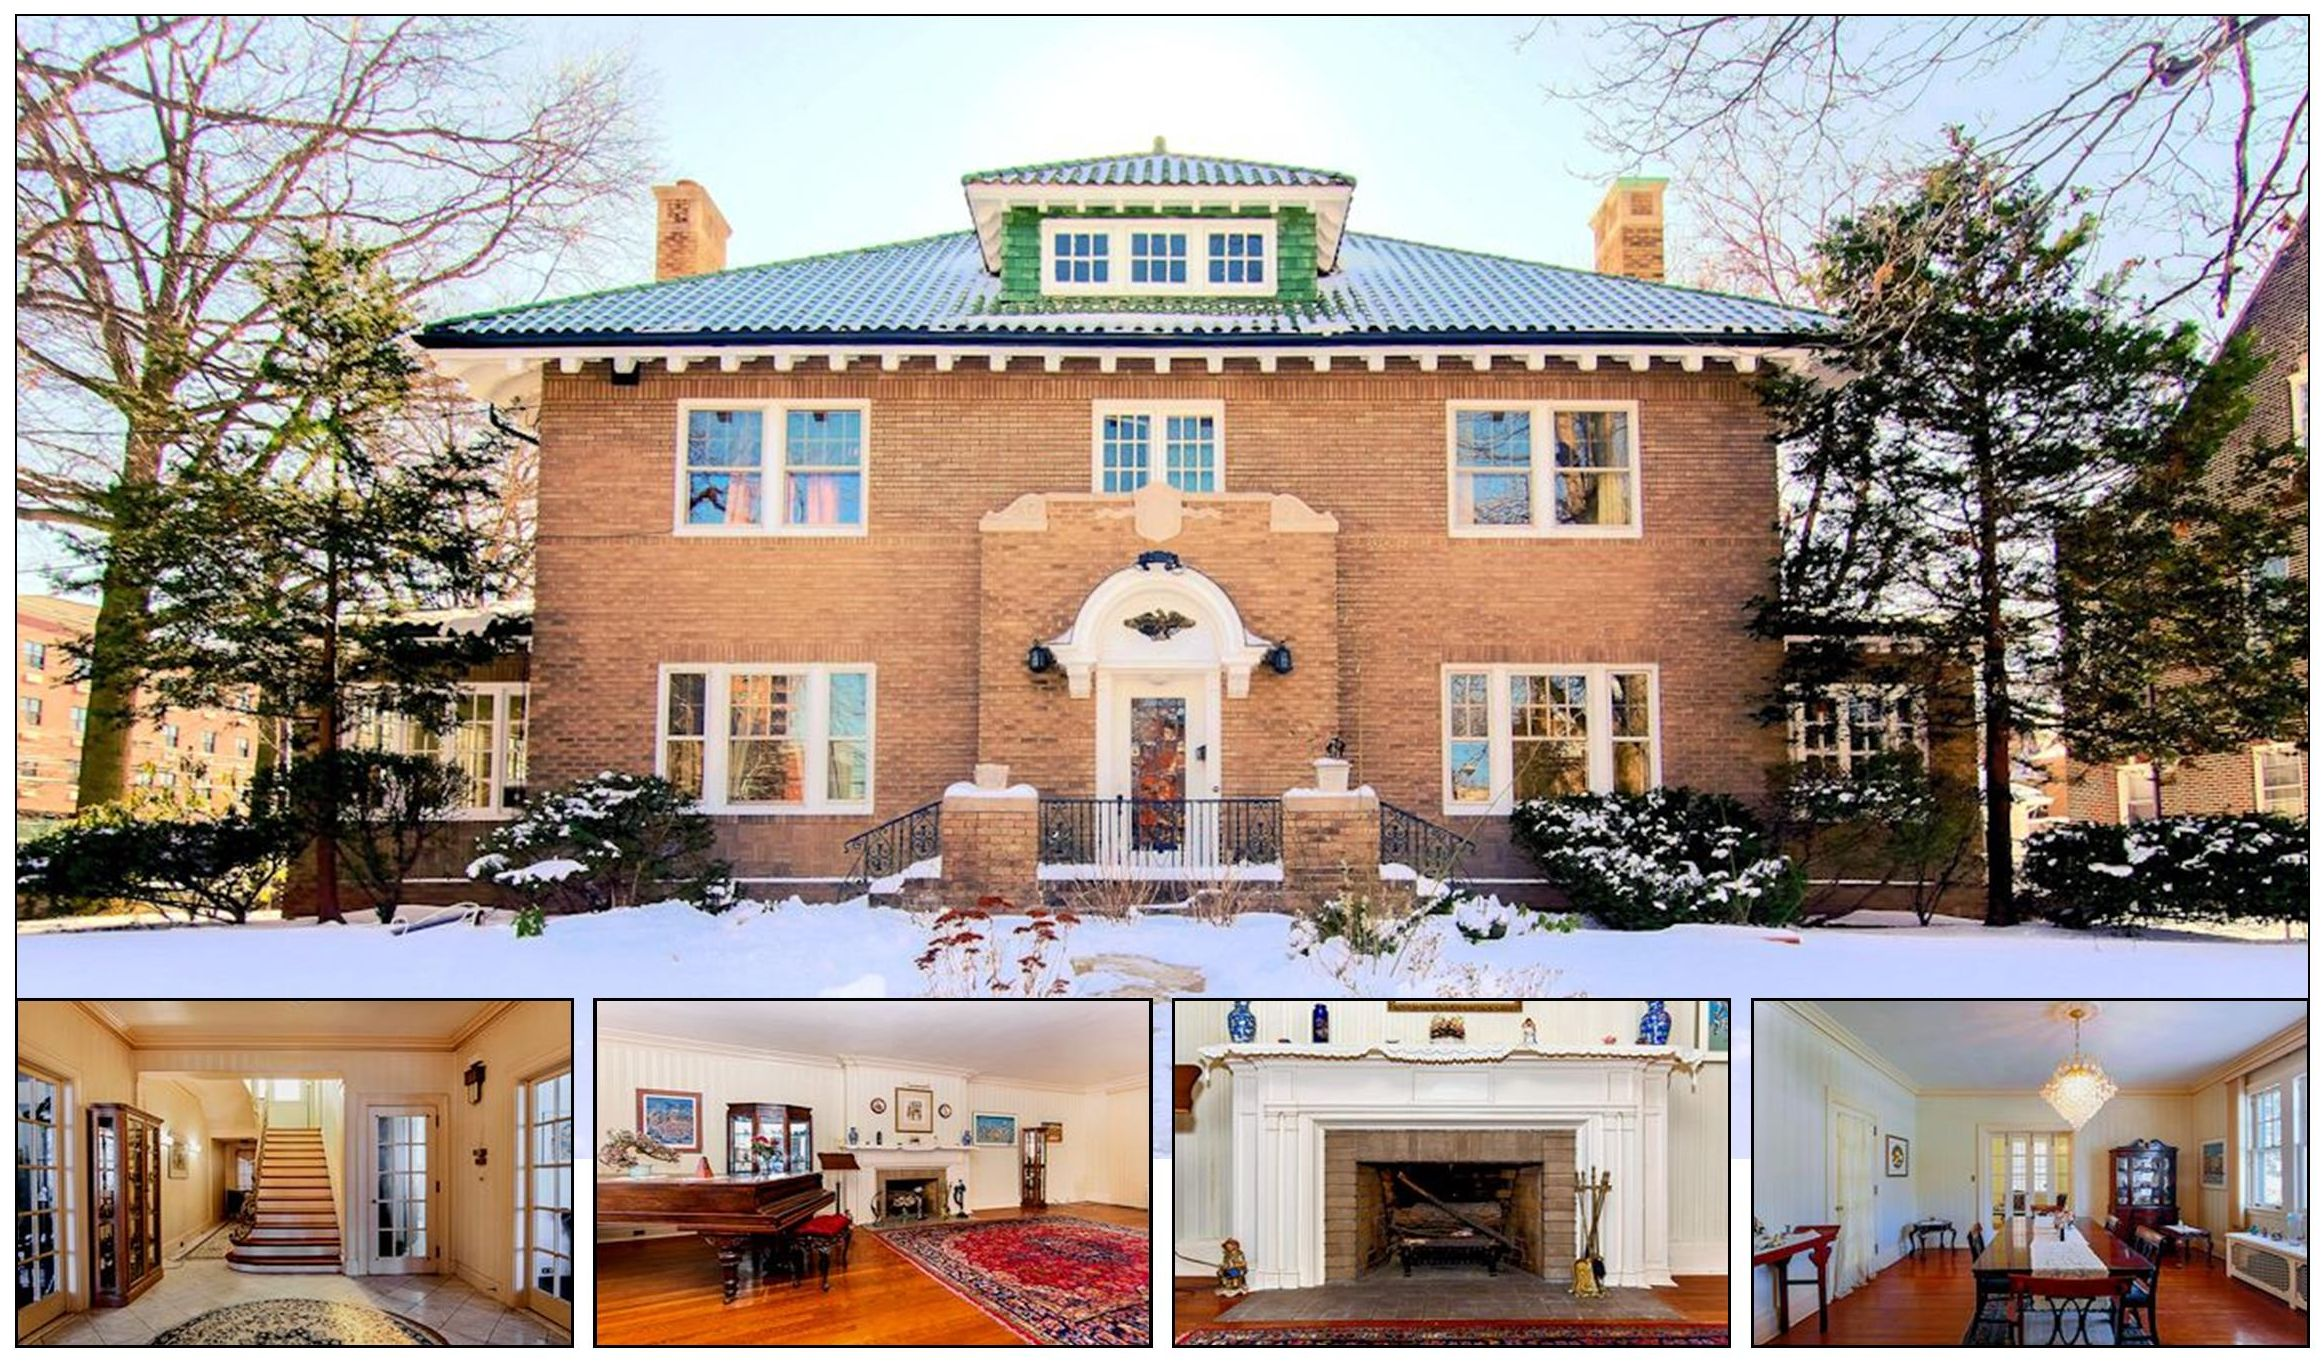 key historic home on market in the beautiful forest hill section